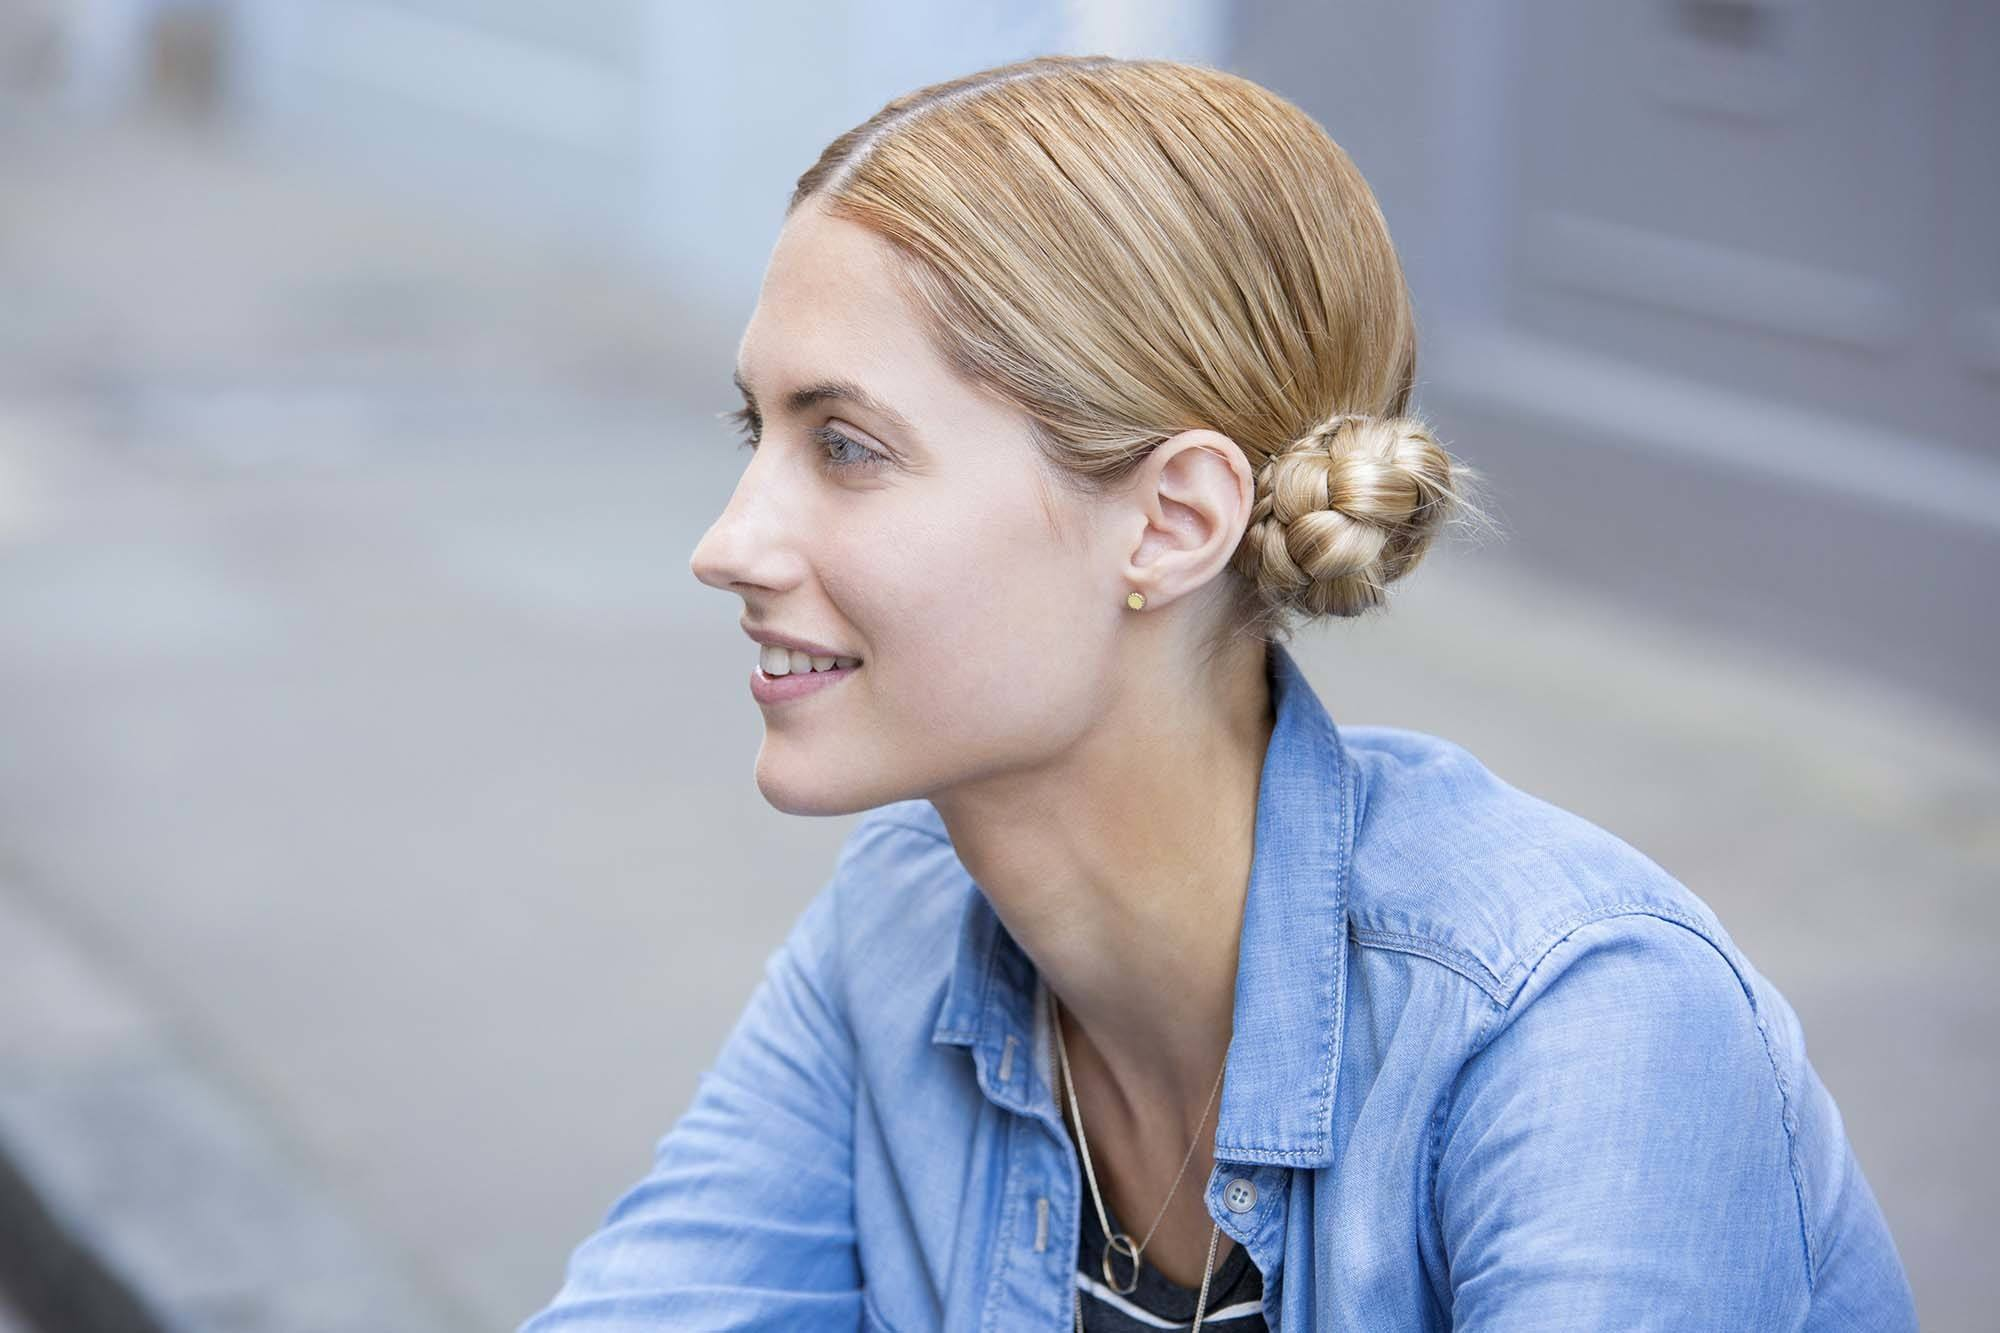 close up shot of model with low macaron buns hairstyle, wearing denim outfit street style